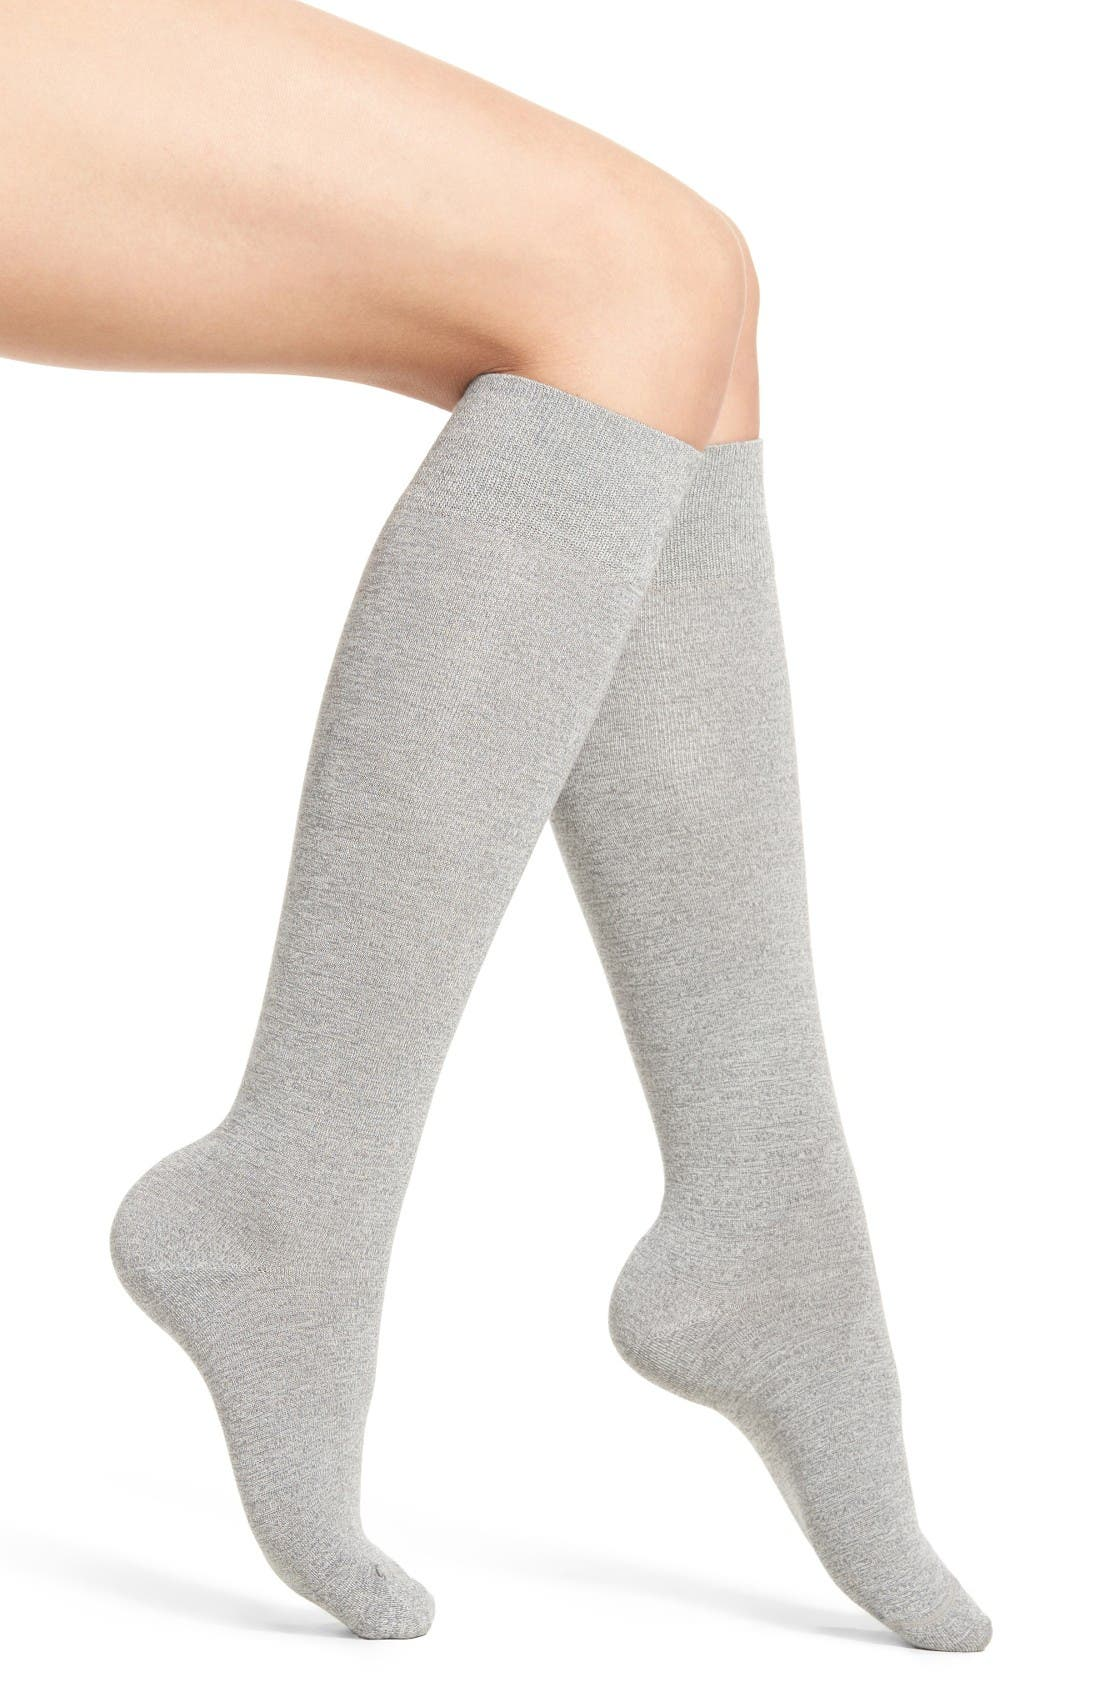 Main Image - Nordstrom Knee High Socks (3 for $18)